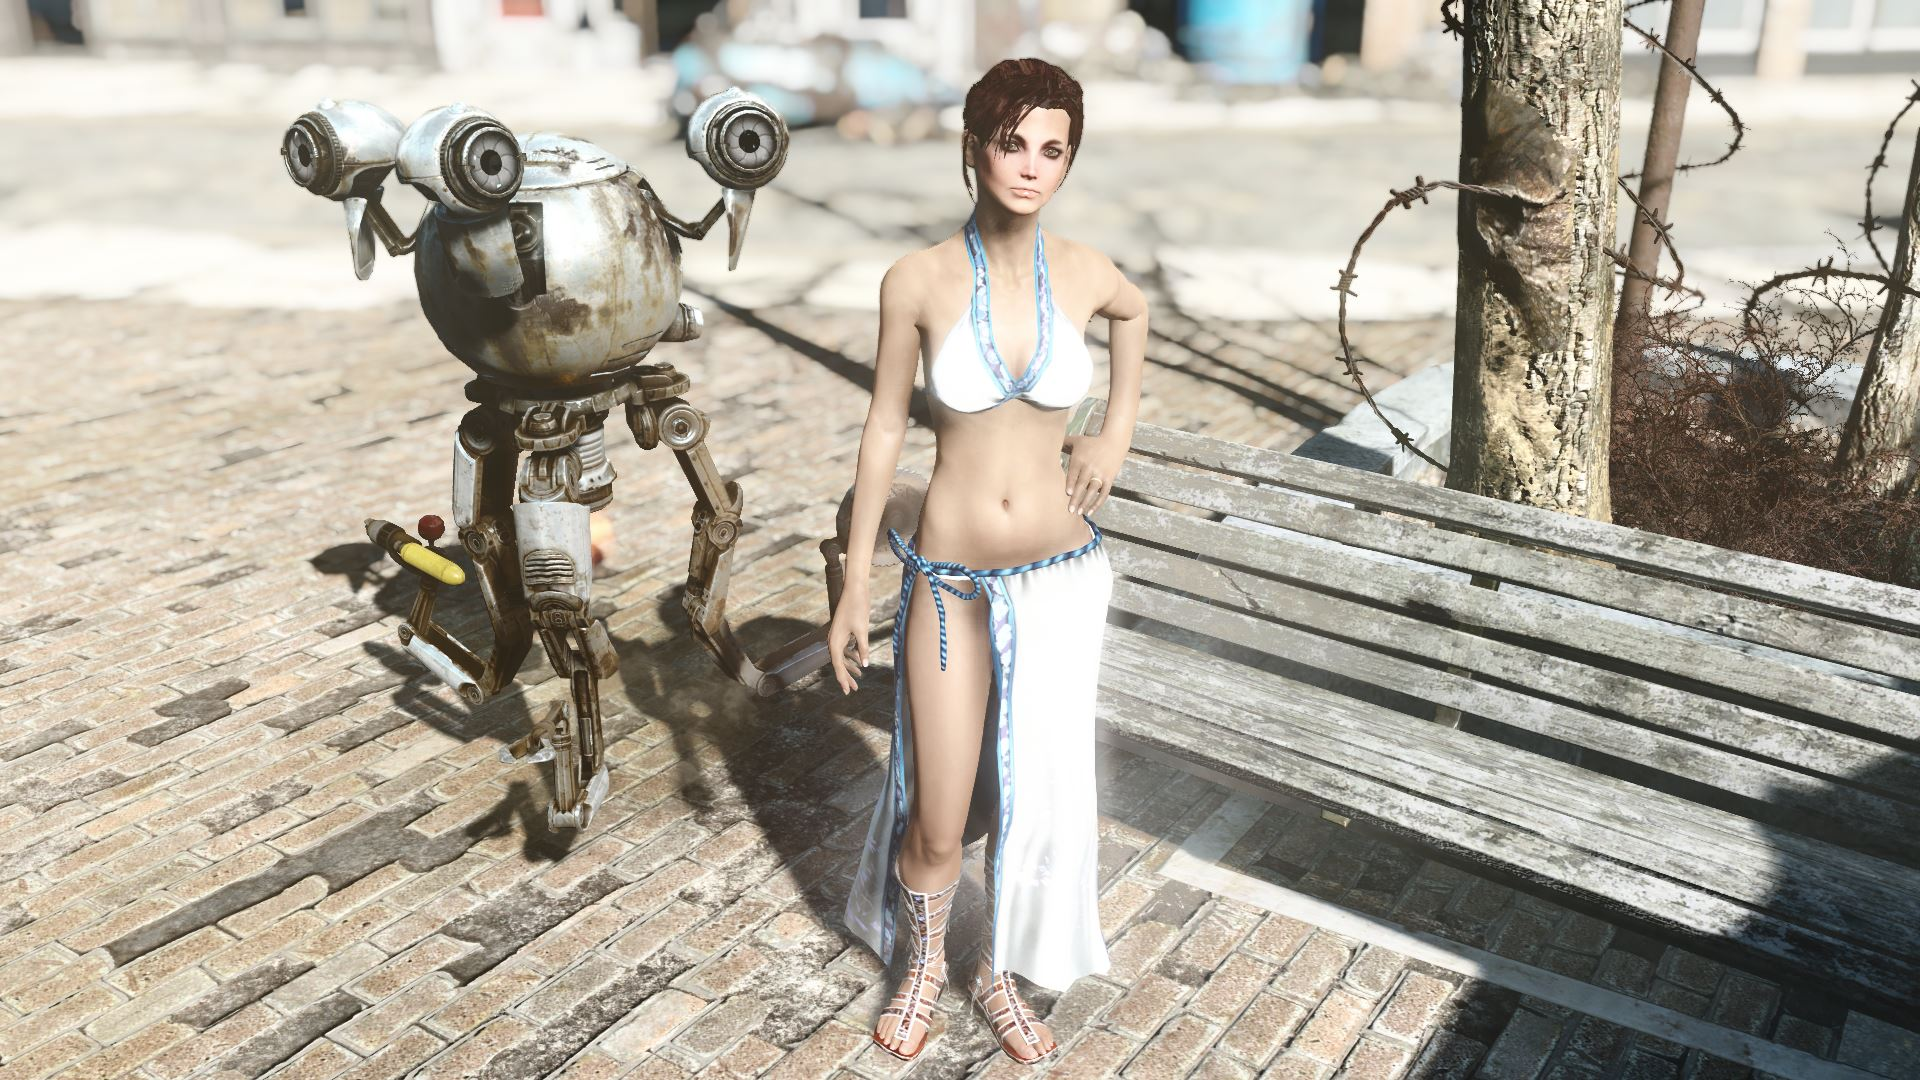 Fallout 4 cbbe with breast physics